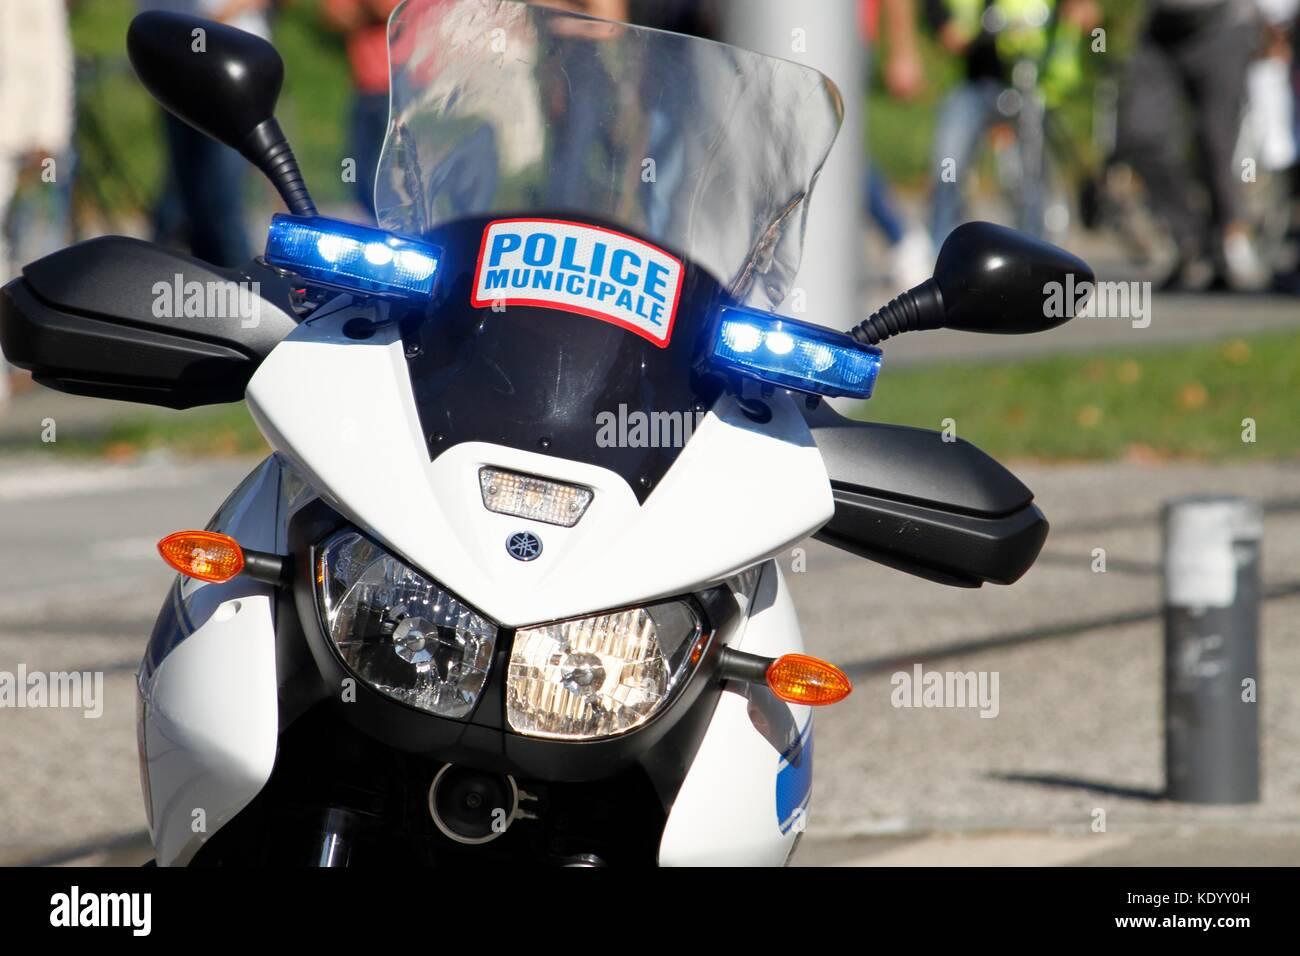 french police motorbike photos french police motorbike images alamy. Black Bedroom Furniture Sets. Home Design Ideas